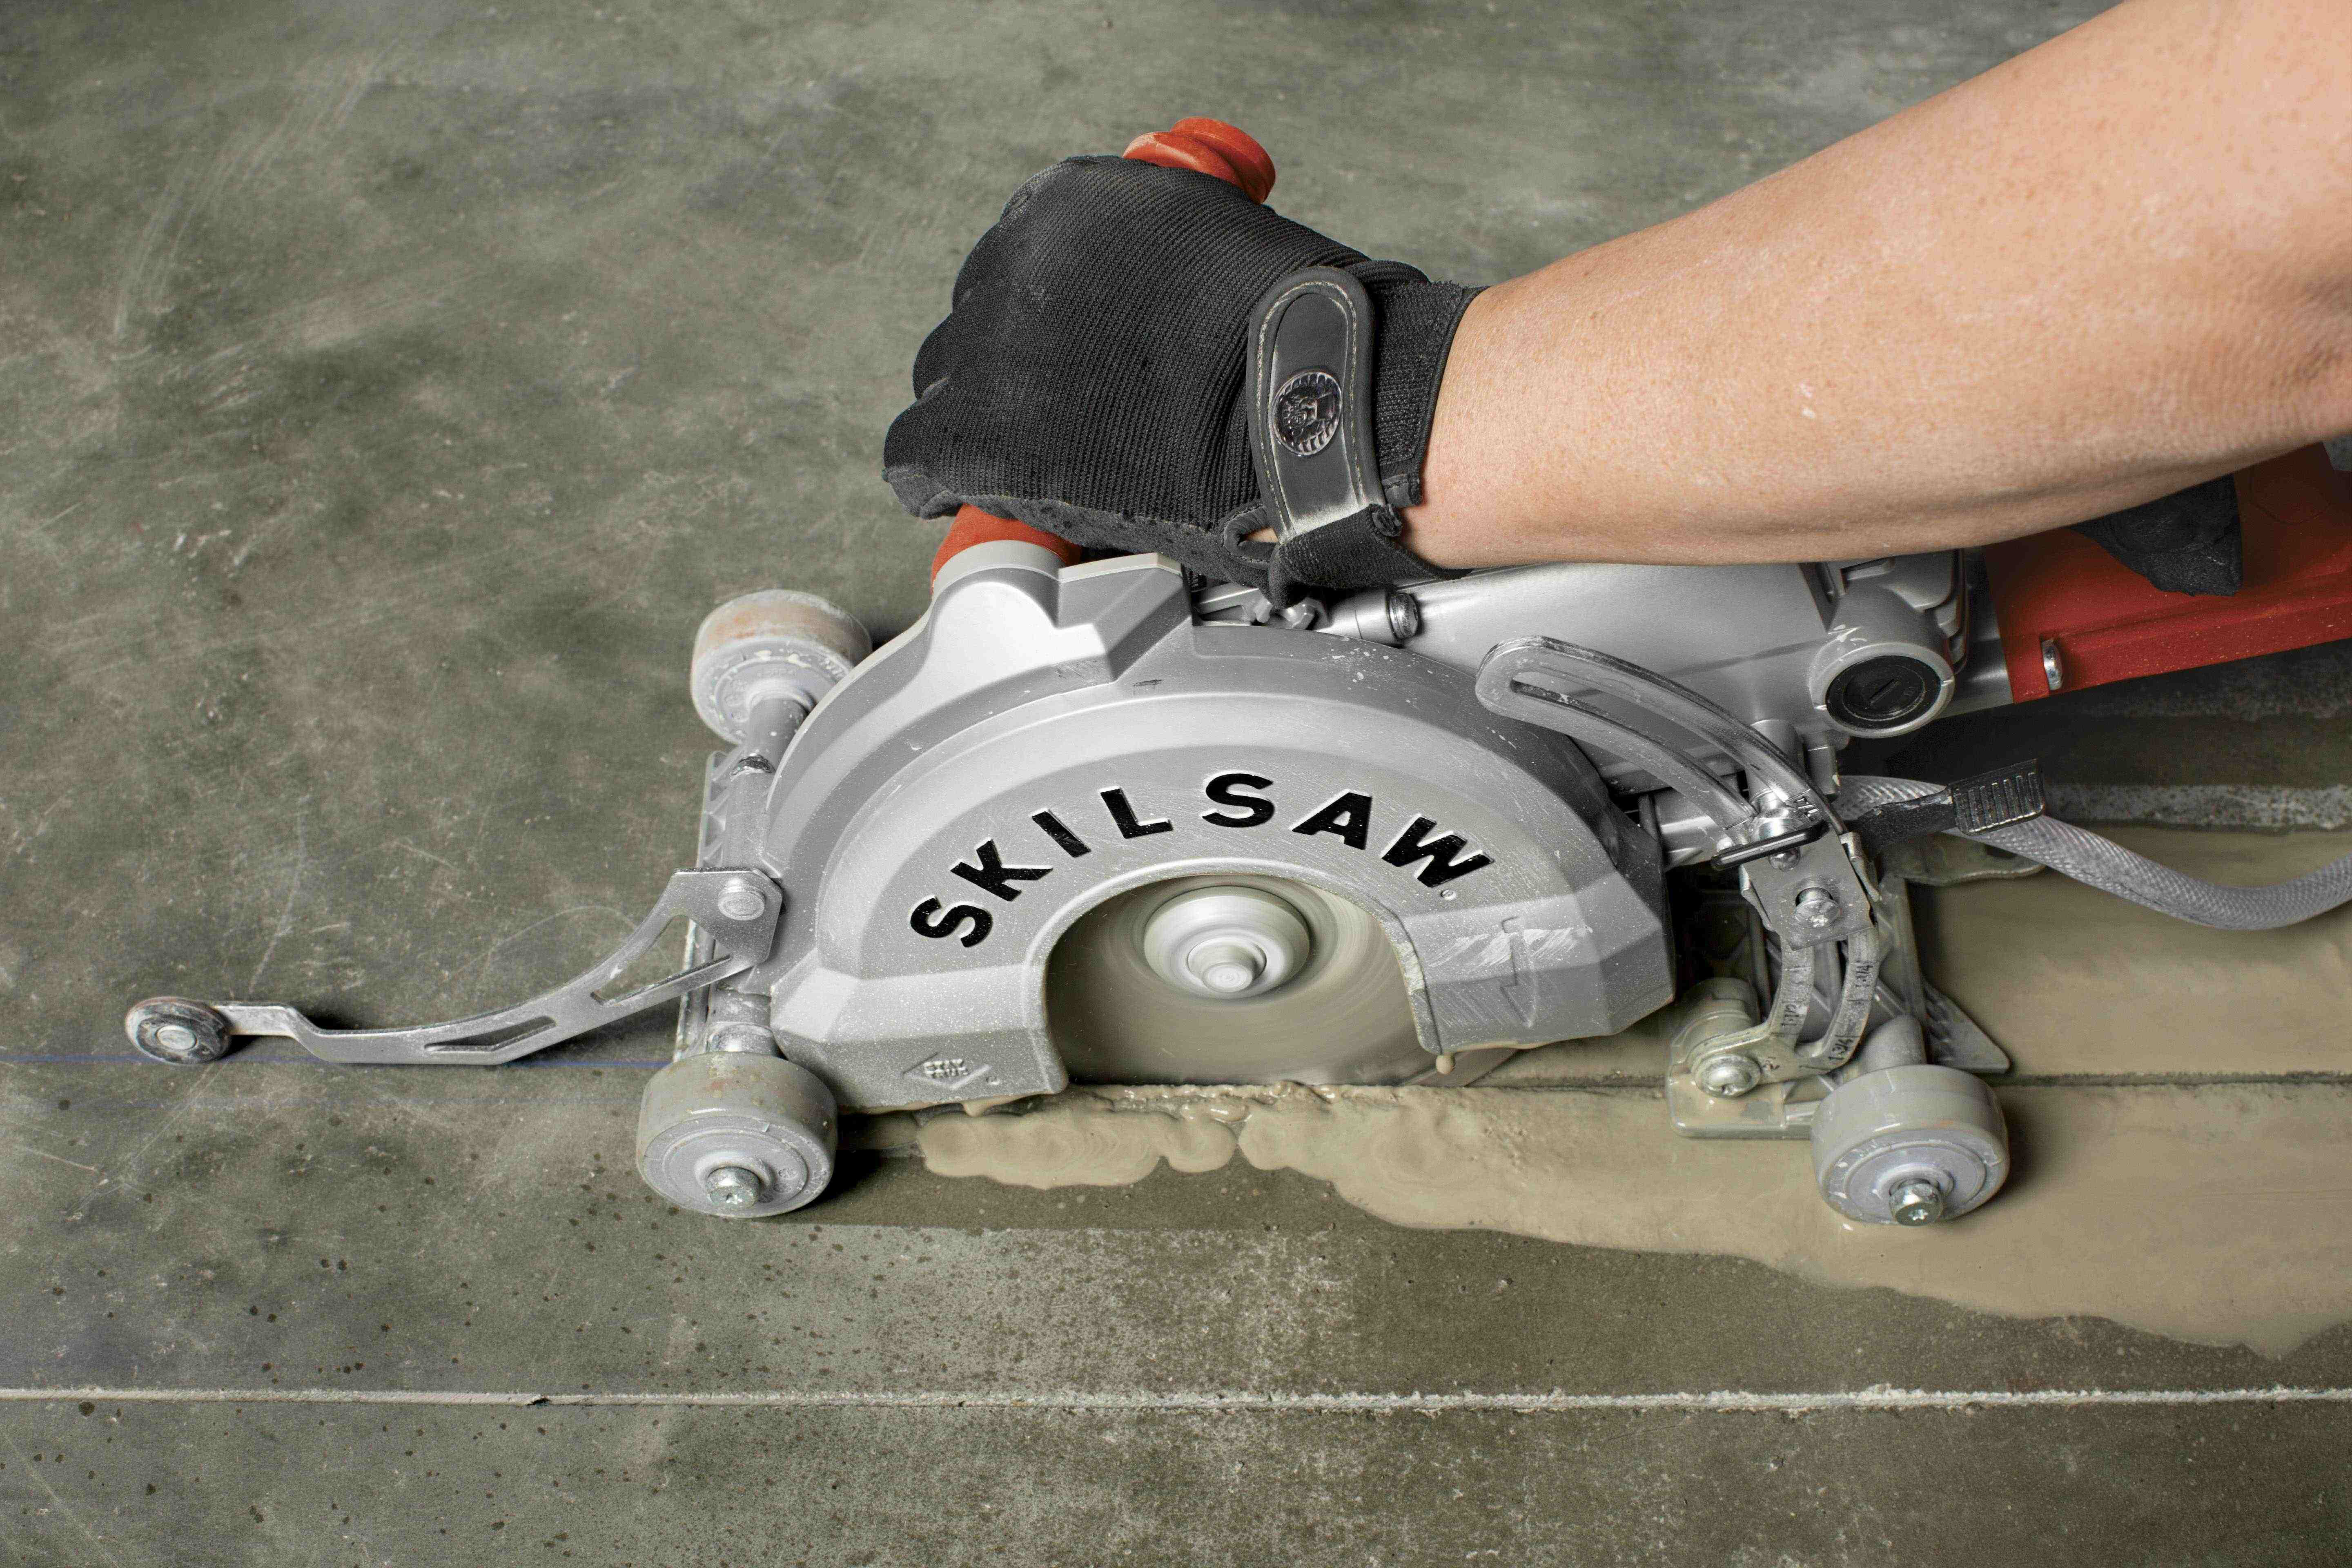 Worm drive skilsaw medusaw redesigned to cut concrete the skilsaw medusaw is purpose built to cut concrete in wet or dry applications greentooth Images